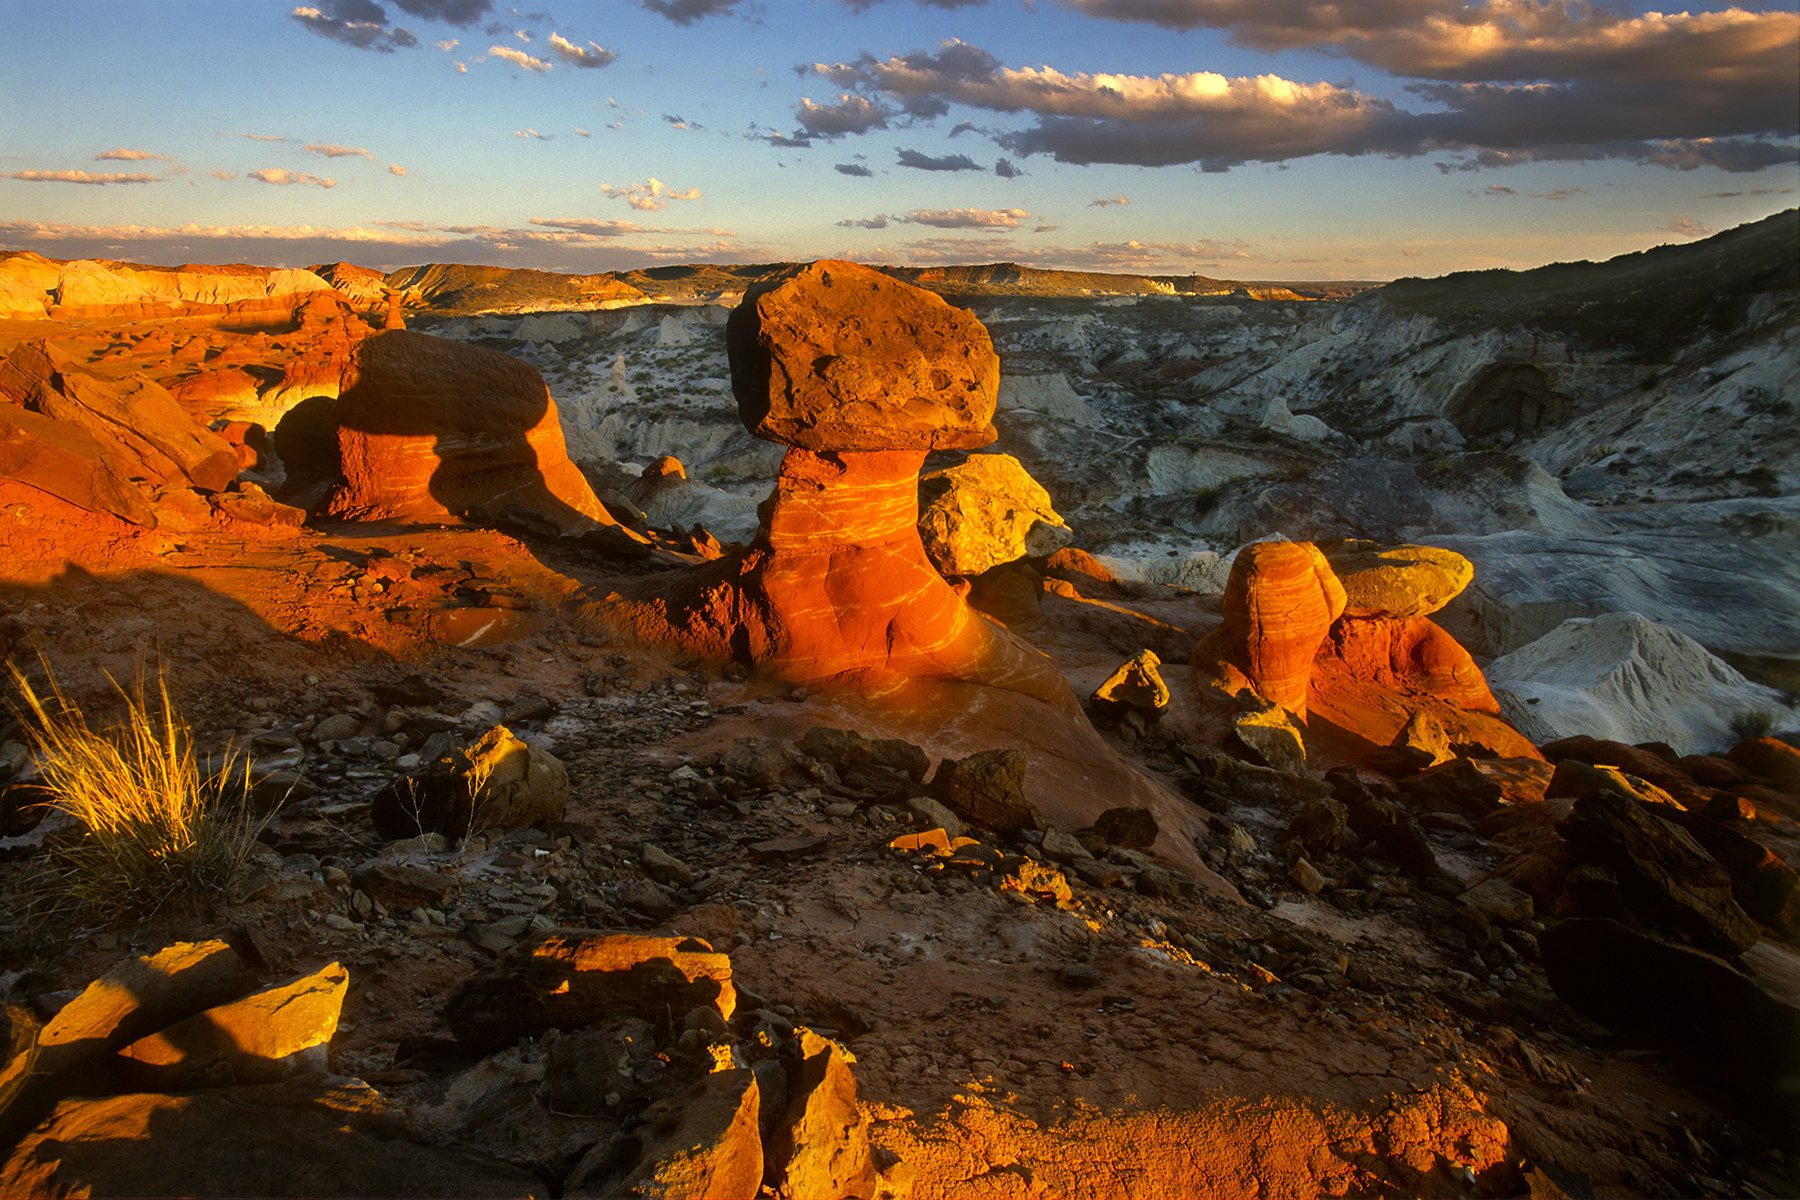 Grand Staircase, Escalante National Monument, Utah